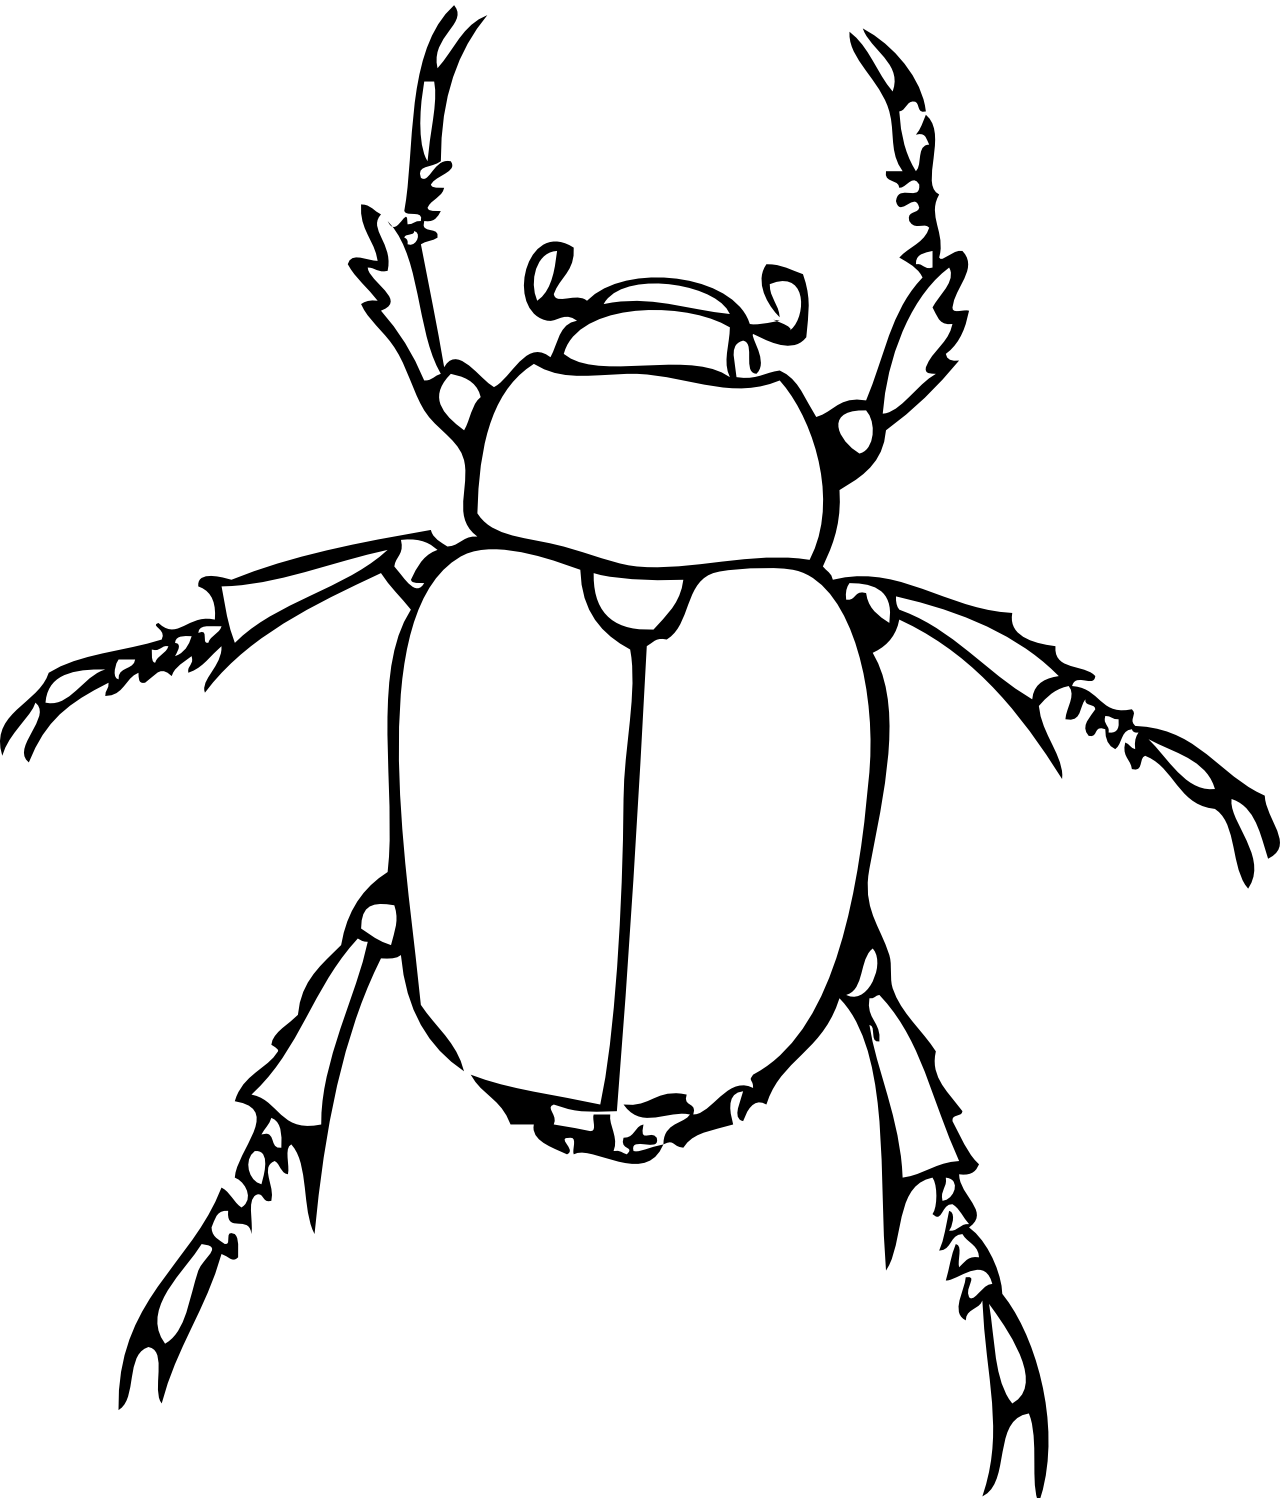 Bug clip art black and white.